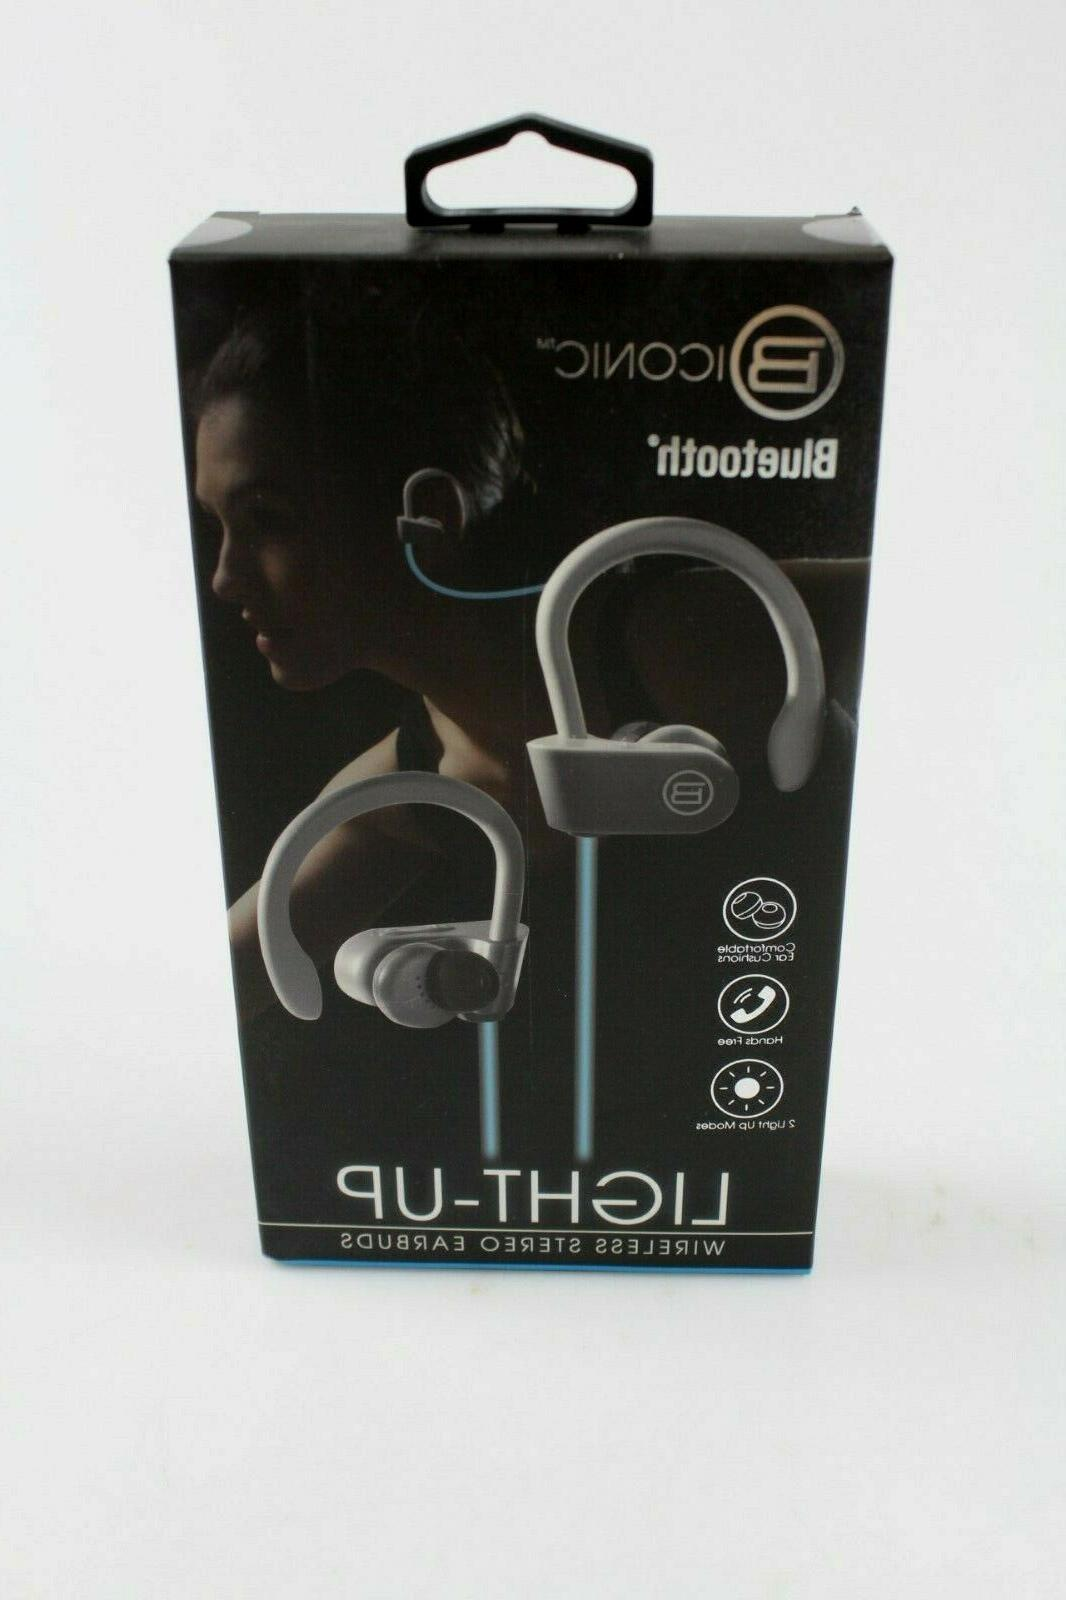 Biconic Wireless Stereo Earbuds NIB Sealed!